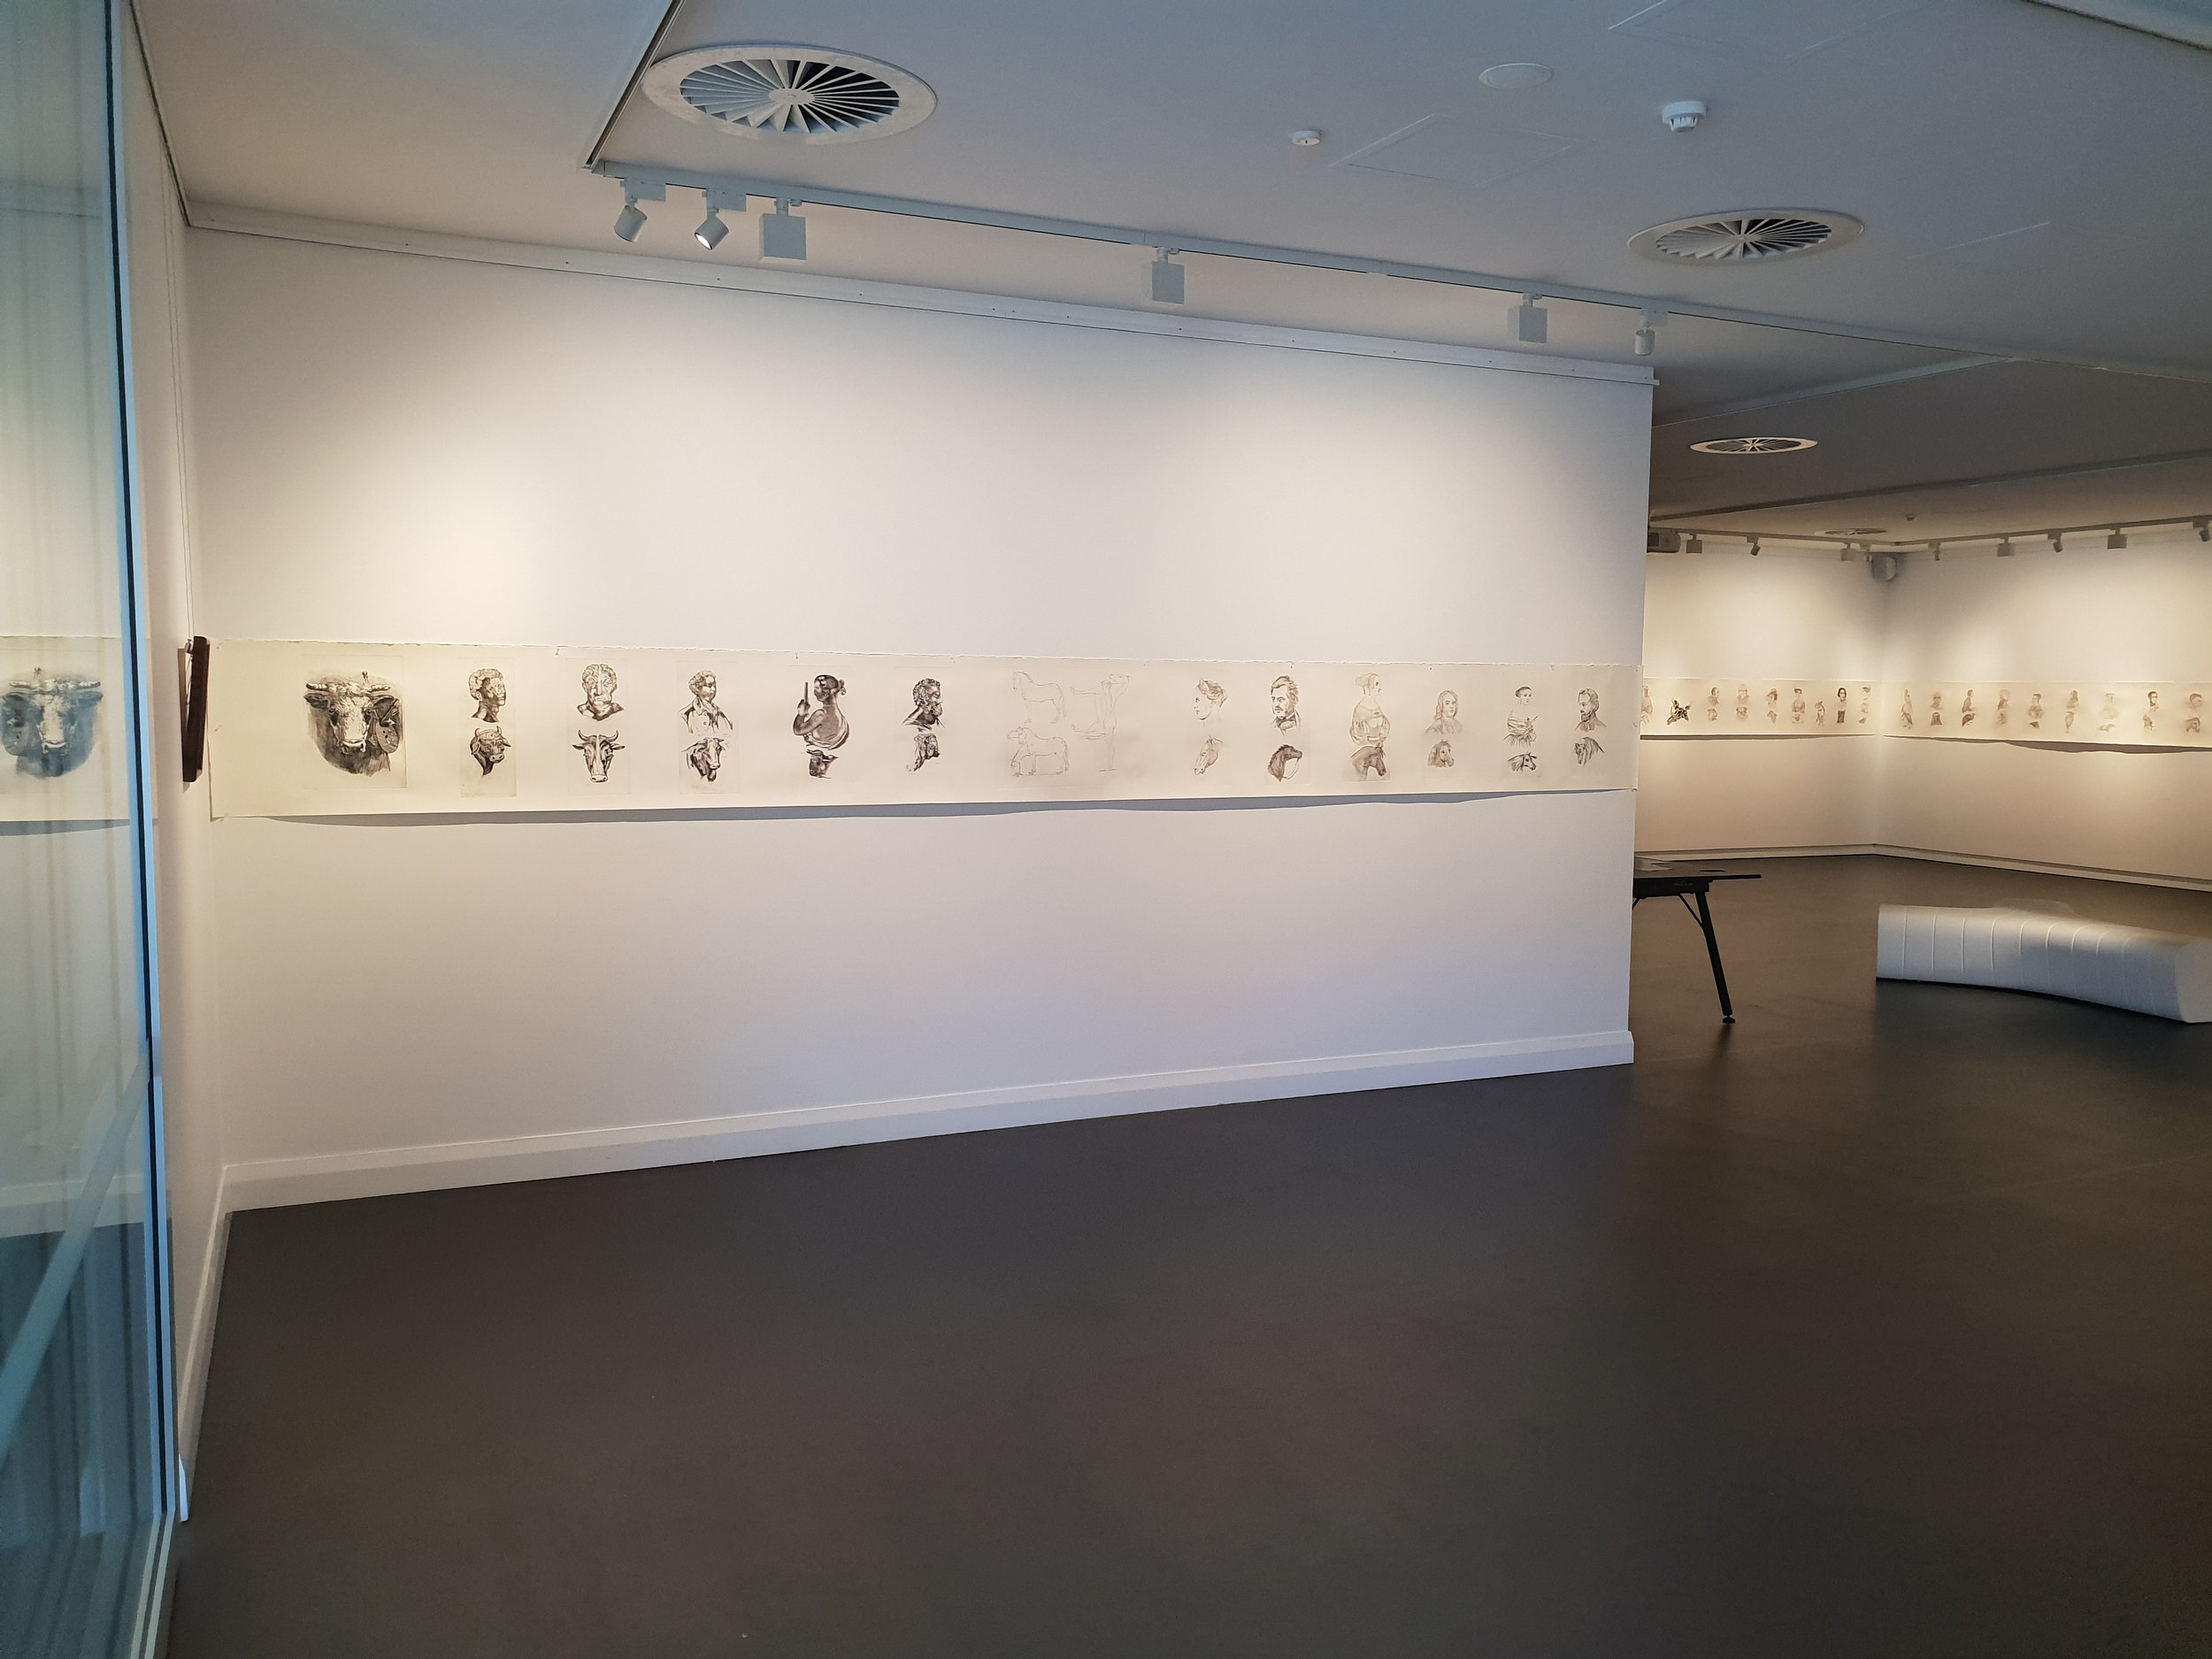 Gallery 25, left entry wall